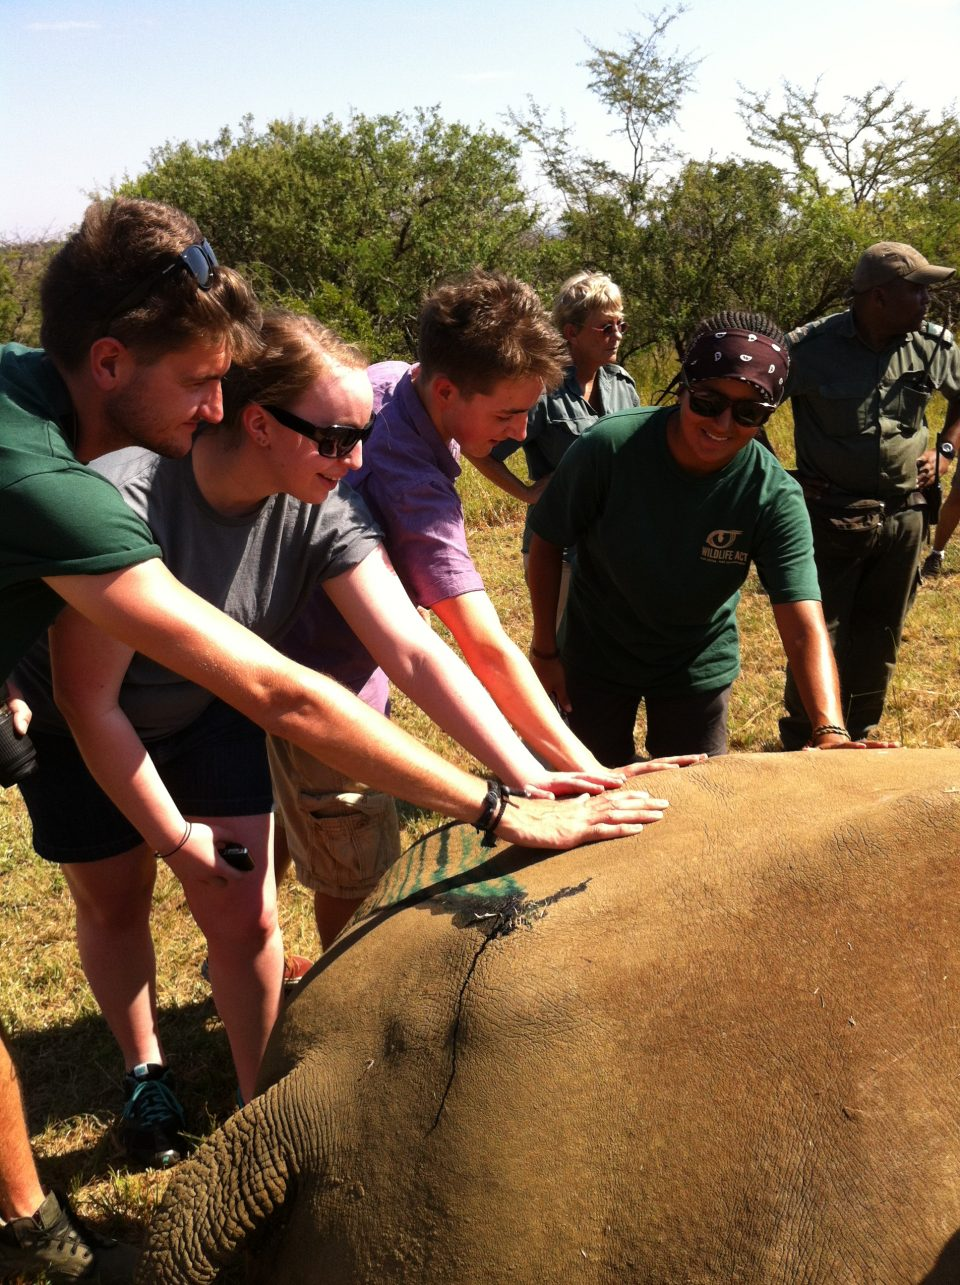 Volunteers with sedated rhino